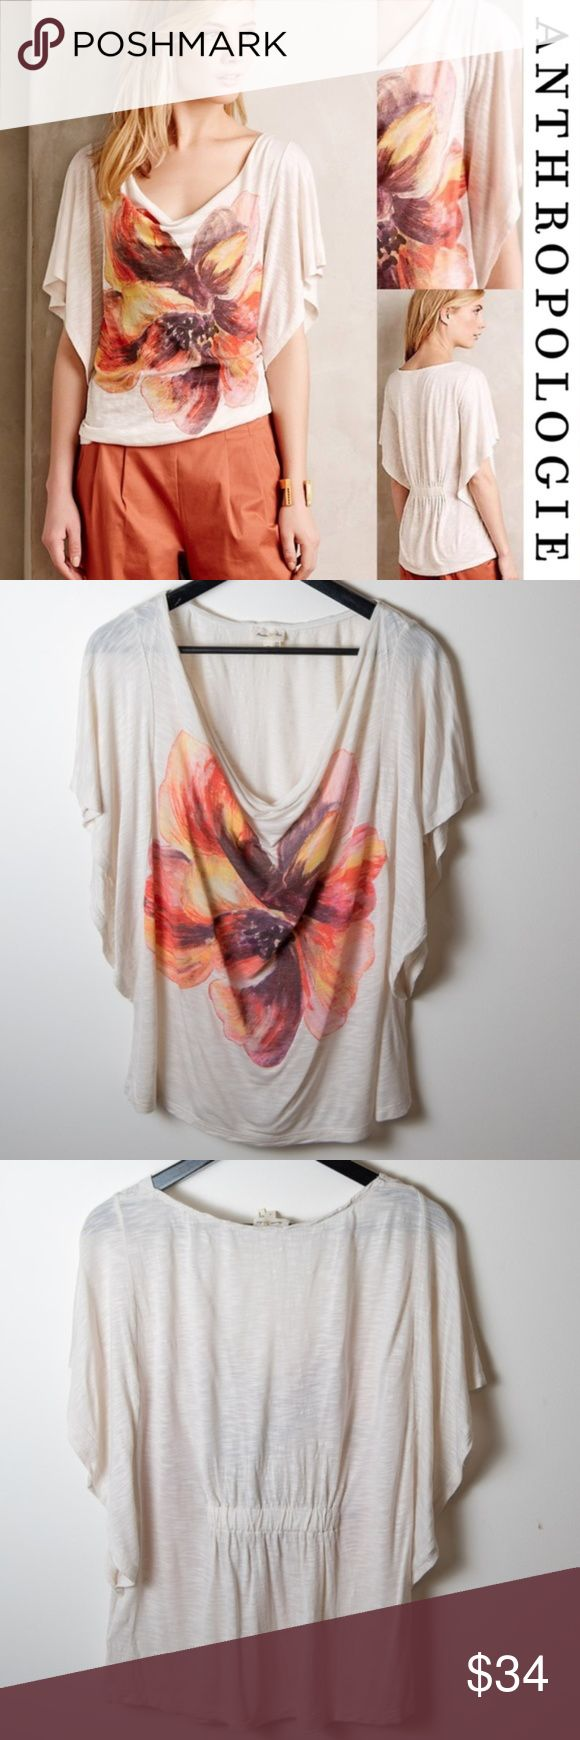 Anthropologie Meadow Rue Floriated Cowlneck Tee Anthropologie Meadow Rue Floriated Cowlneck Tee in medium. Batwing sleeves, cinched back, pull on style. With large flower on front of teeshirt. Rayon jersey. Hand wash. Good preloved condition. No noticeable holes or stains. Does have some pulling at the top of shoulder, see photo. Fluttery sleeves, soft cowlick, large graphic print. The longest part of the flutter sleeves connects to the body of the shirt right at the waist. Off white blouse…